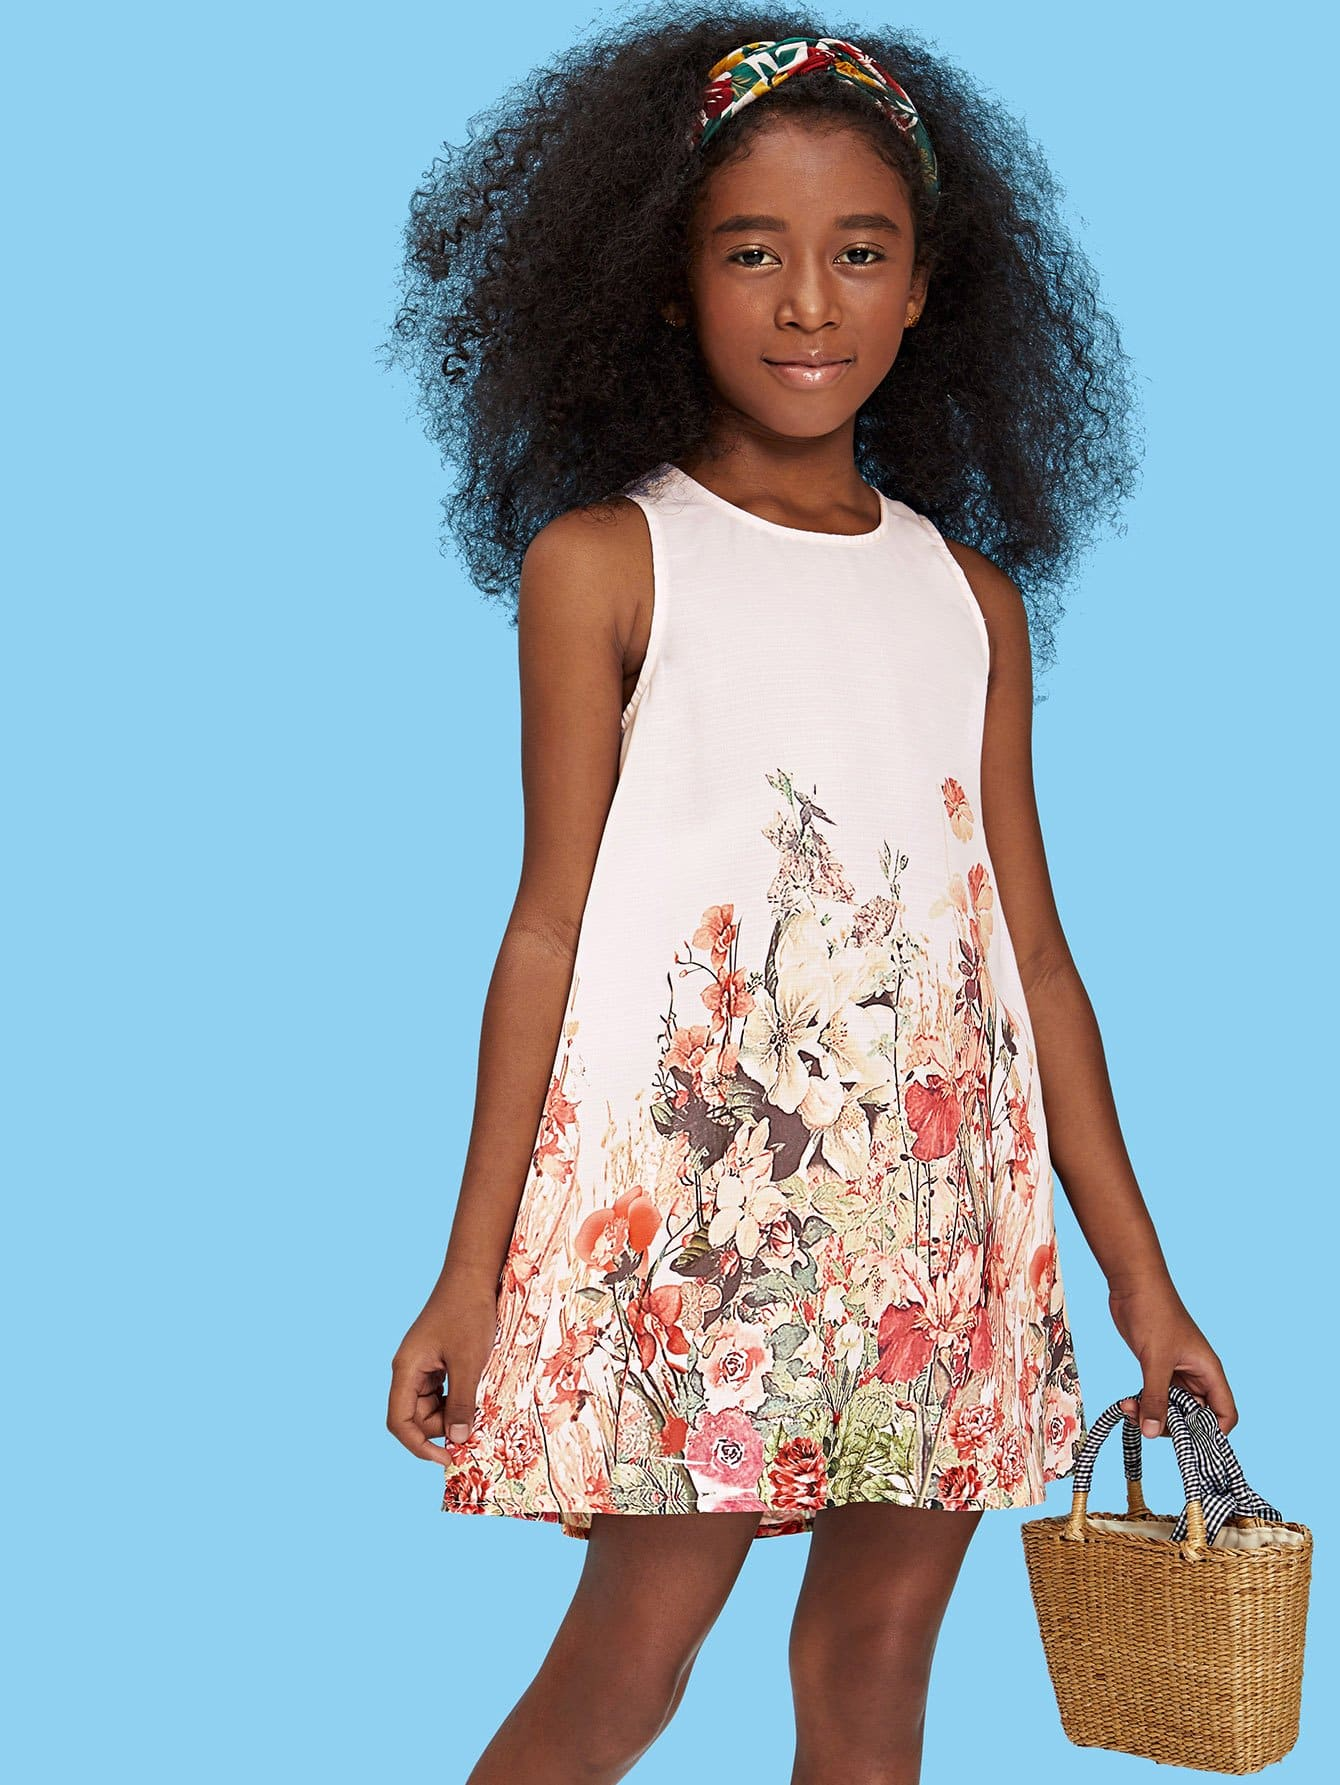 Fashion sites for girls 9